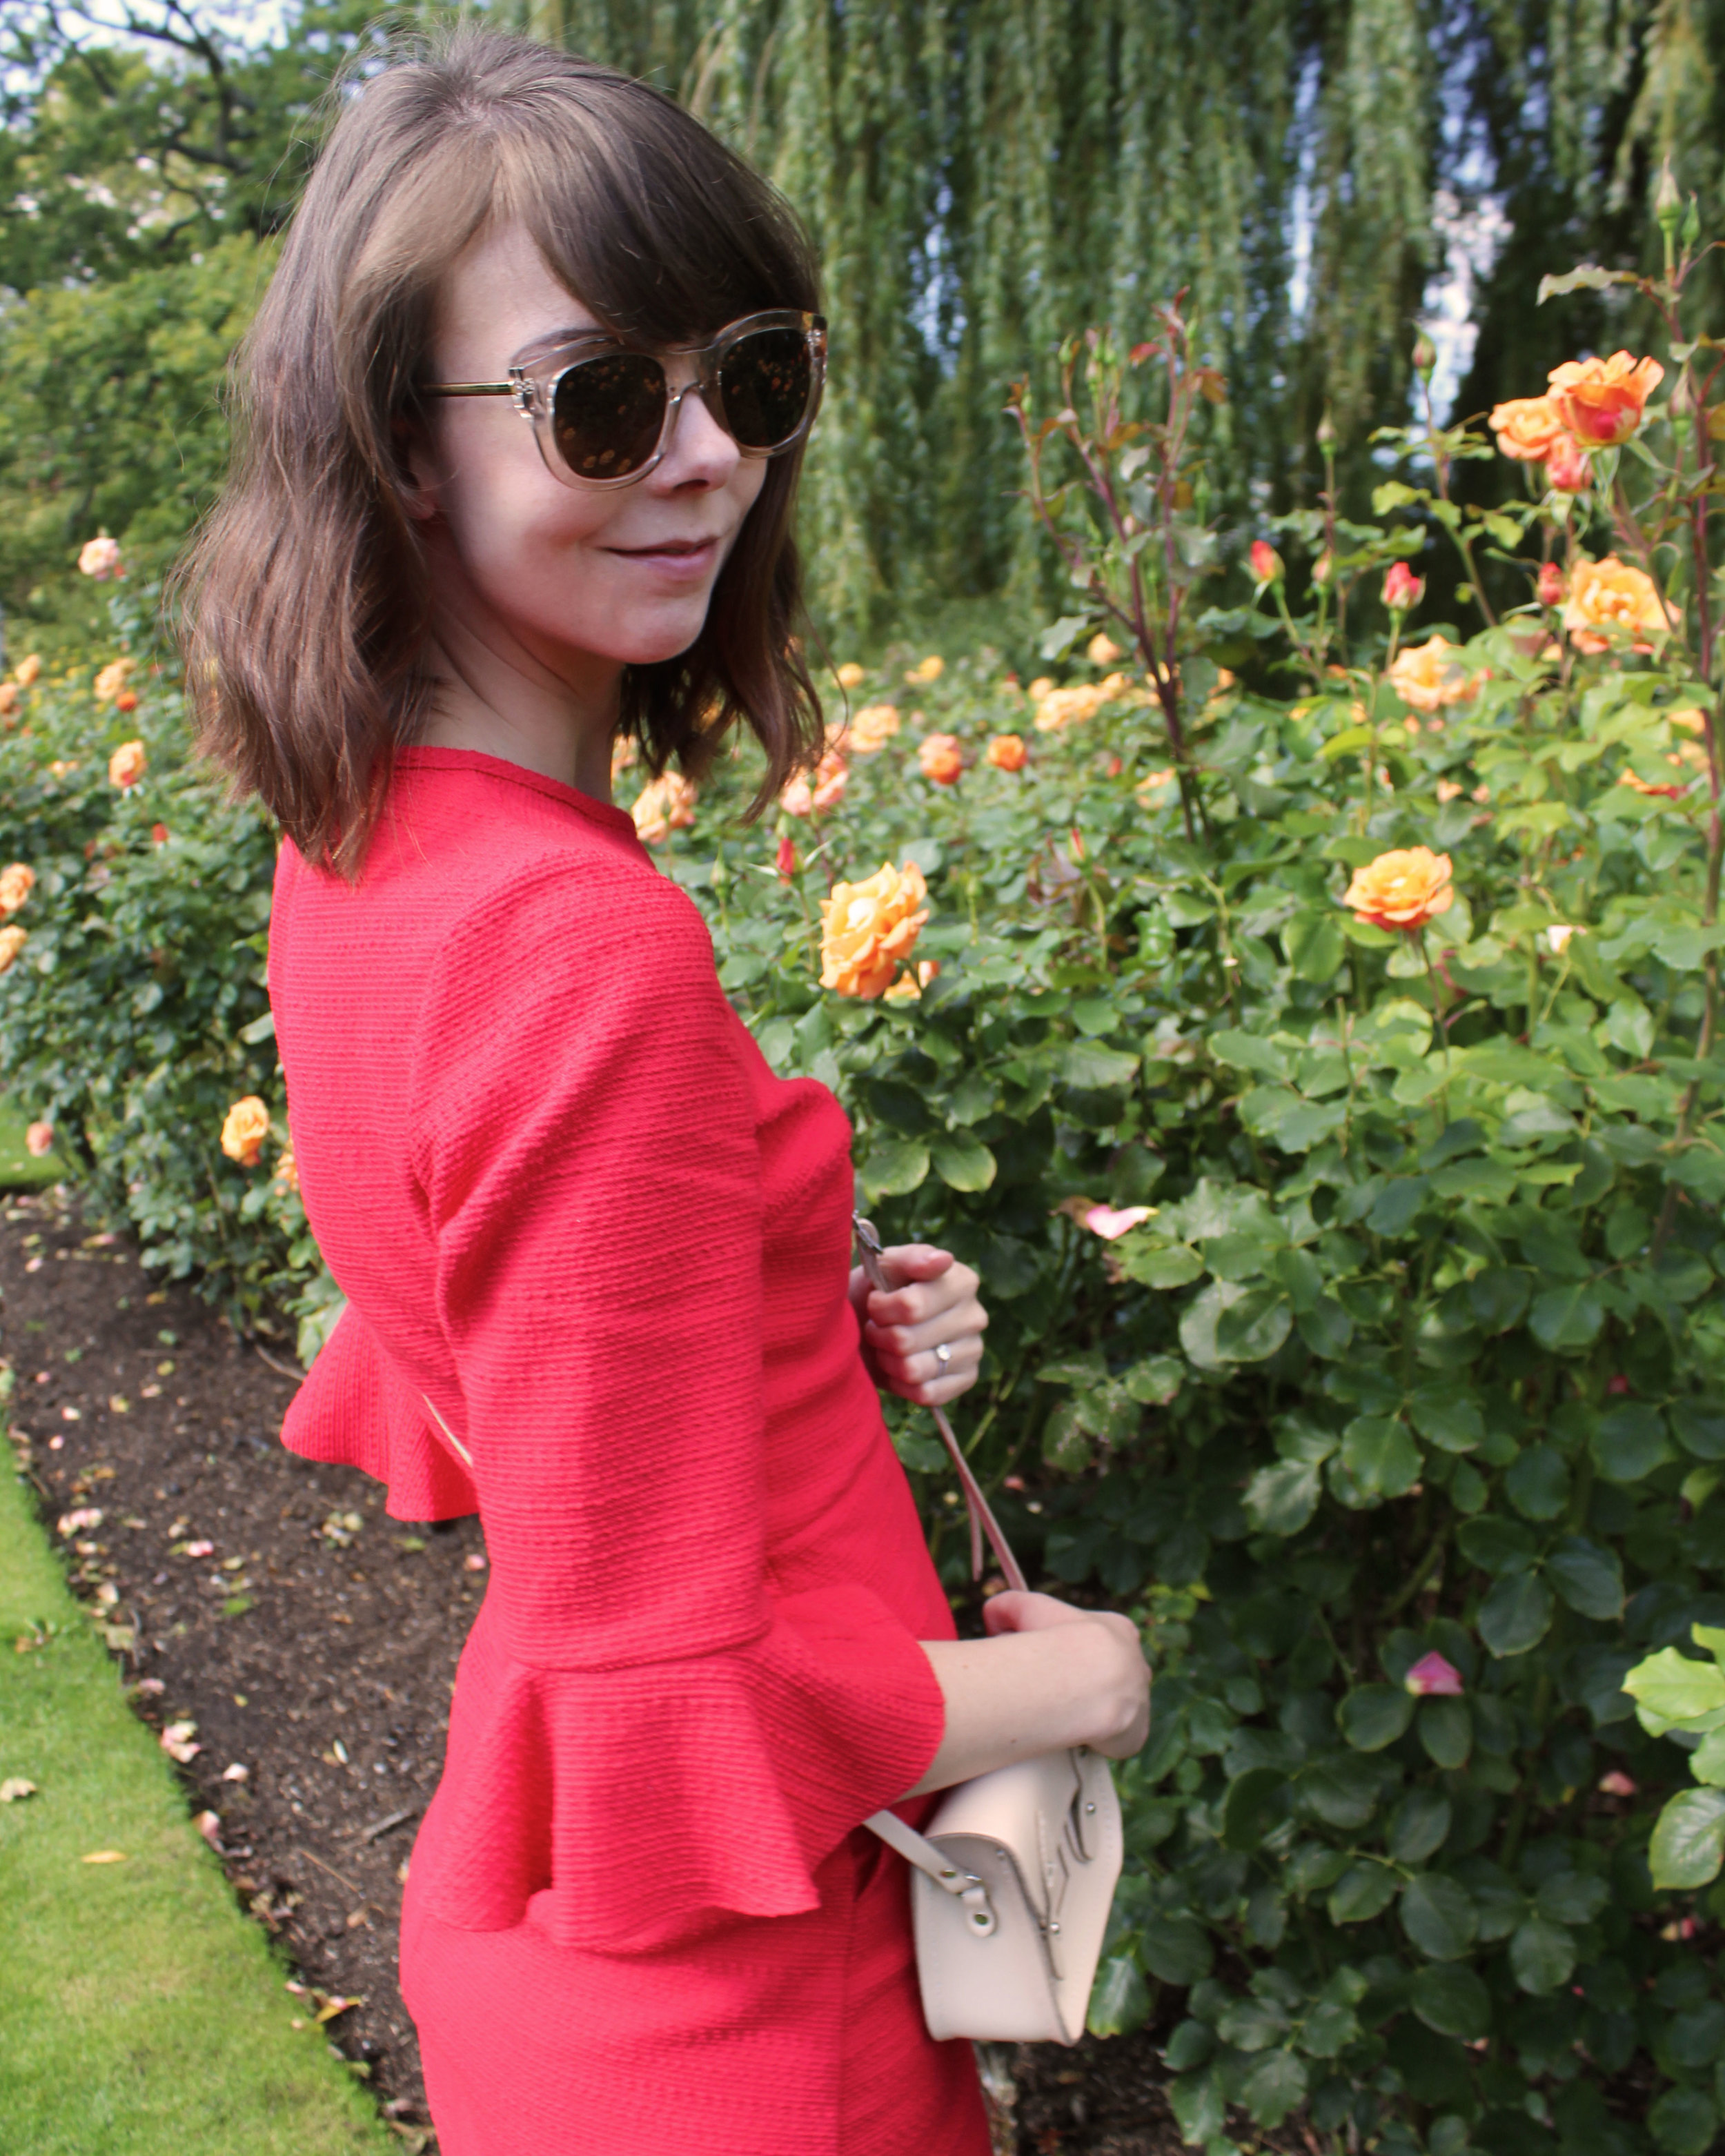 Red dress from Topshop in London's Regent's Park.